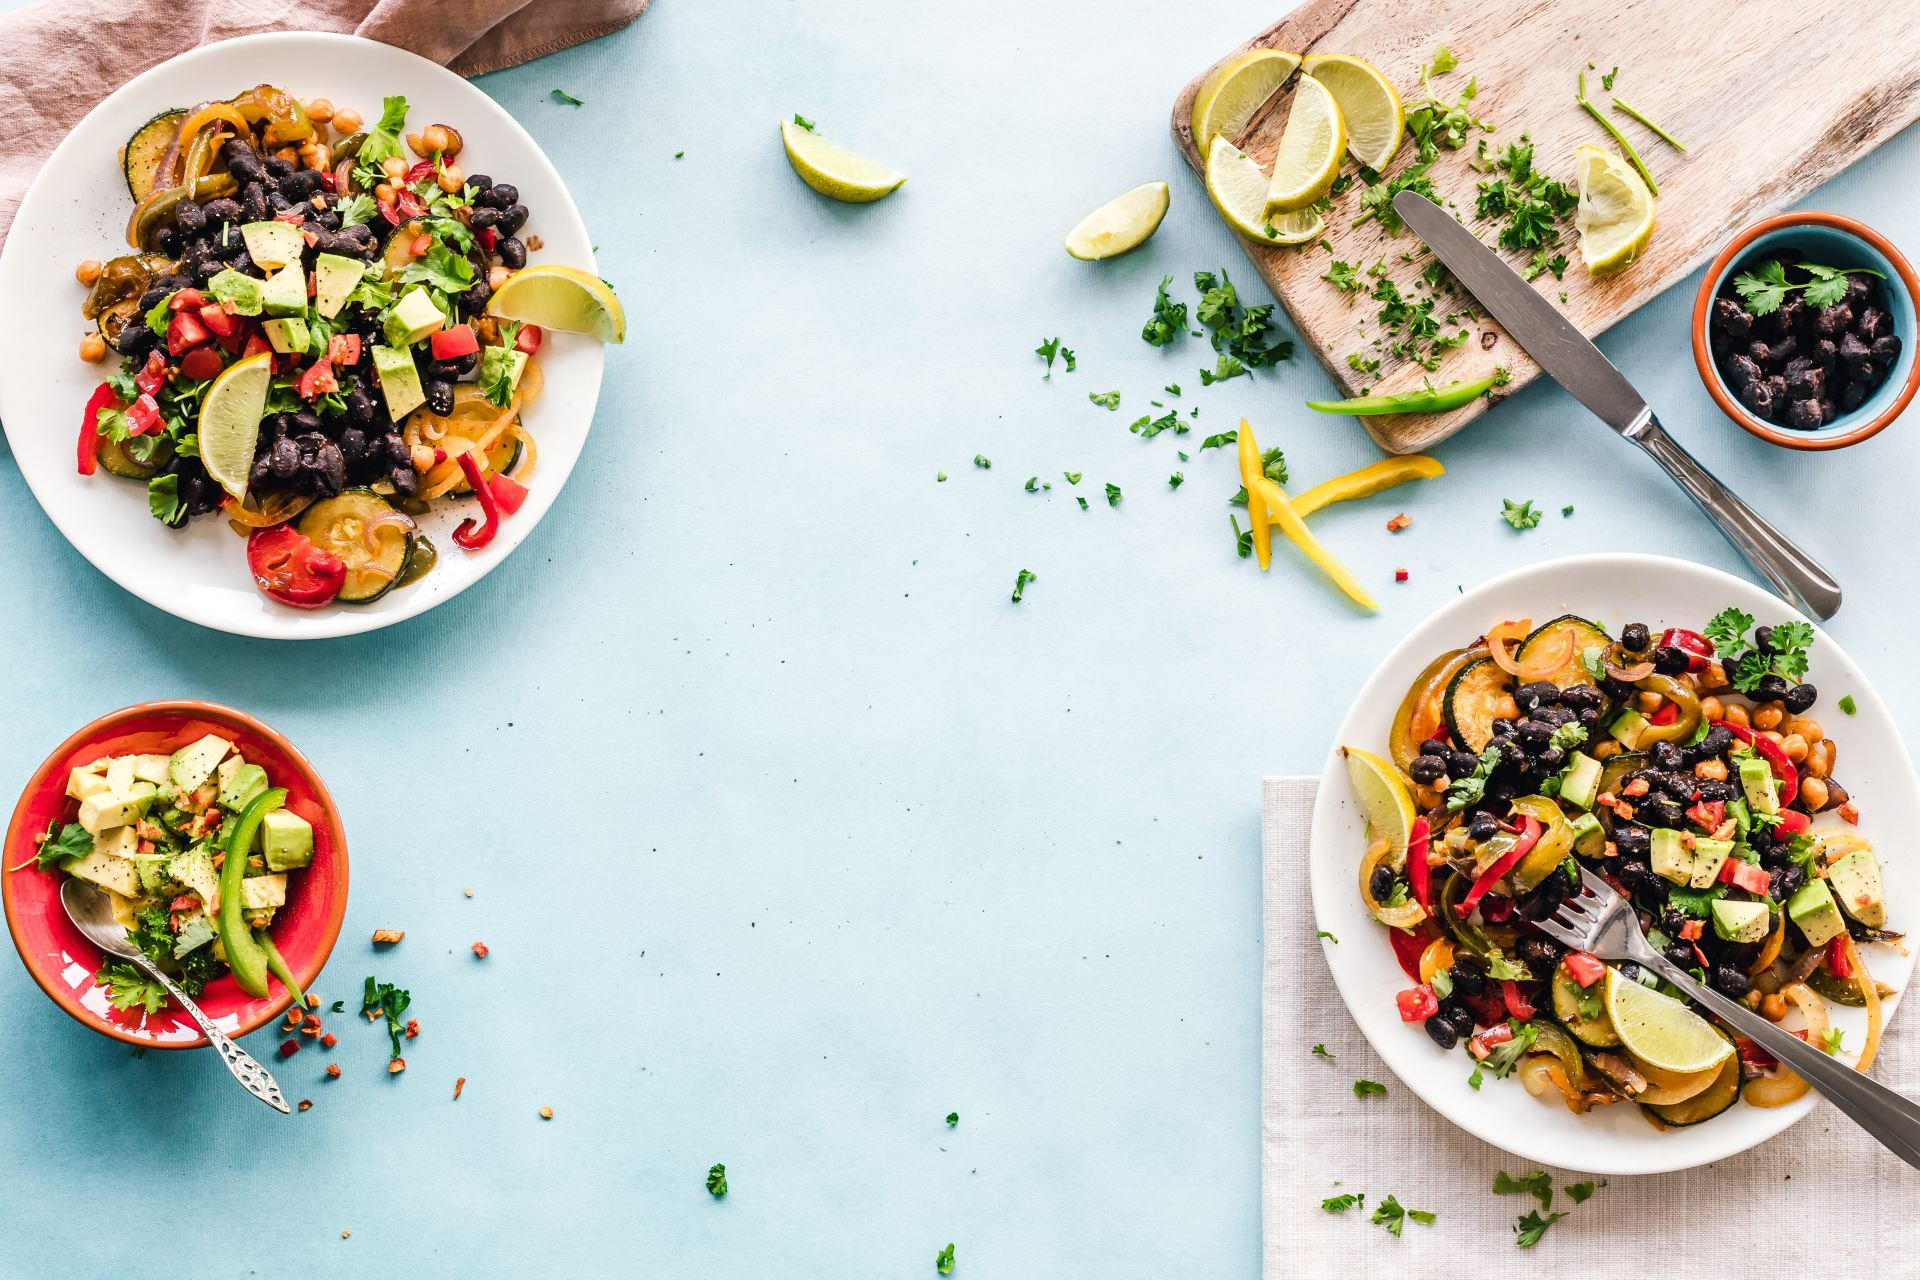 Three bowls of salad and a chopping board on a table.